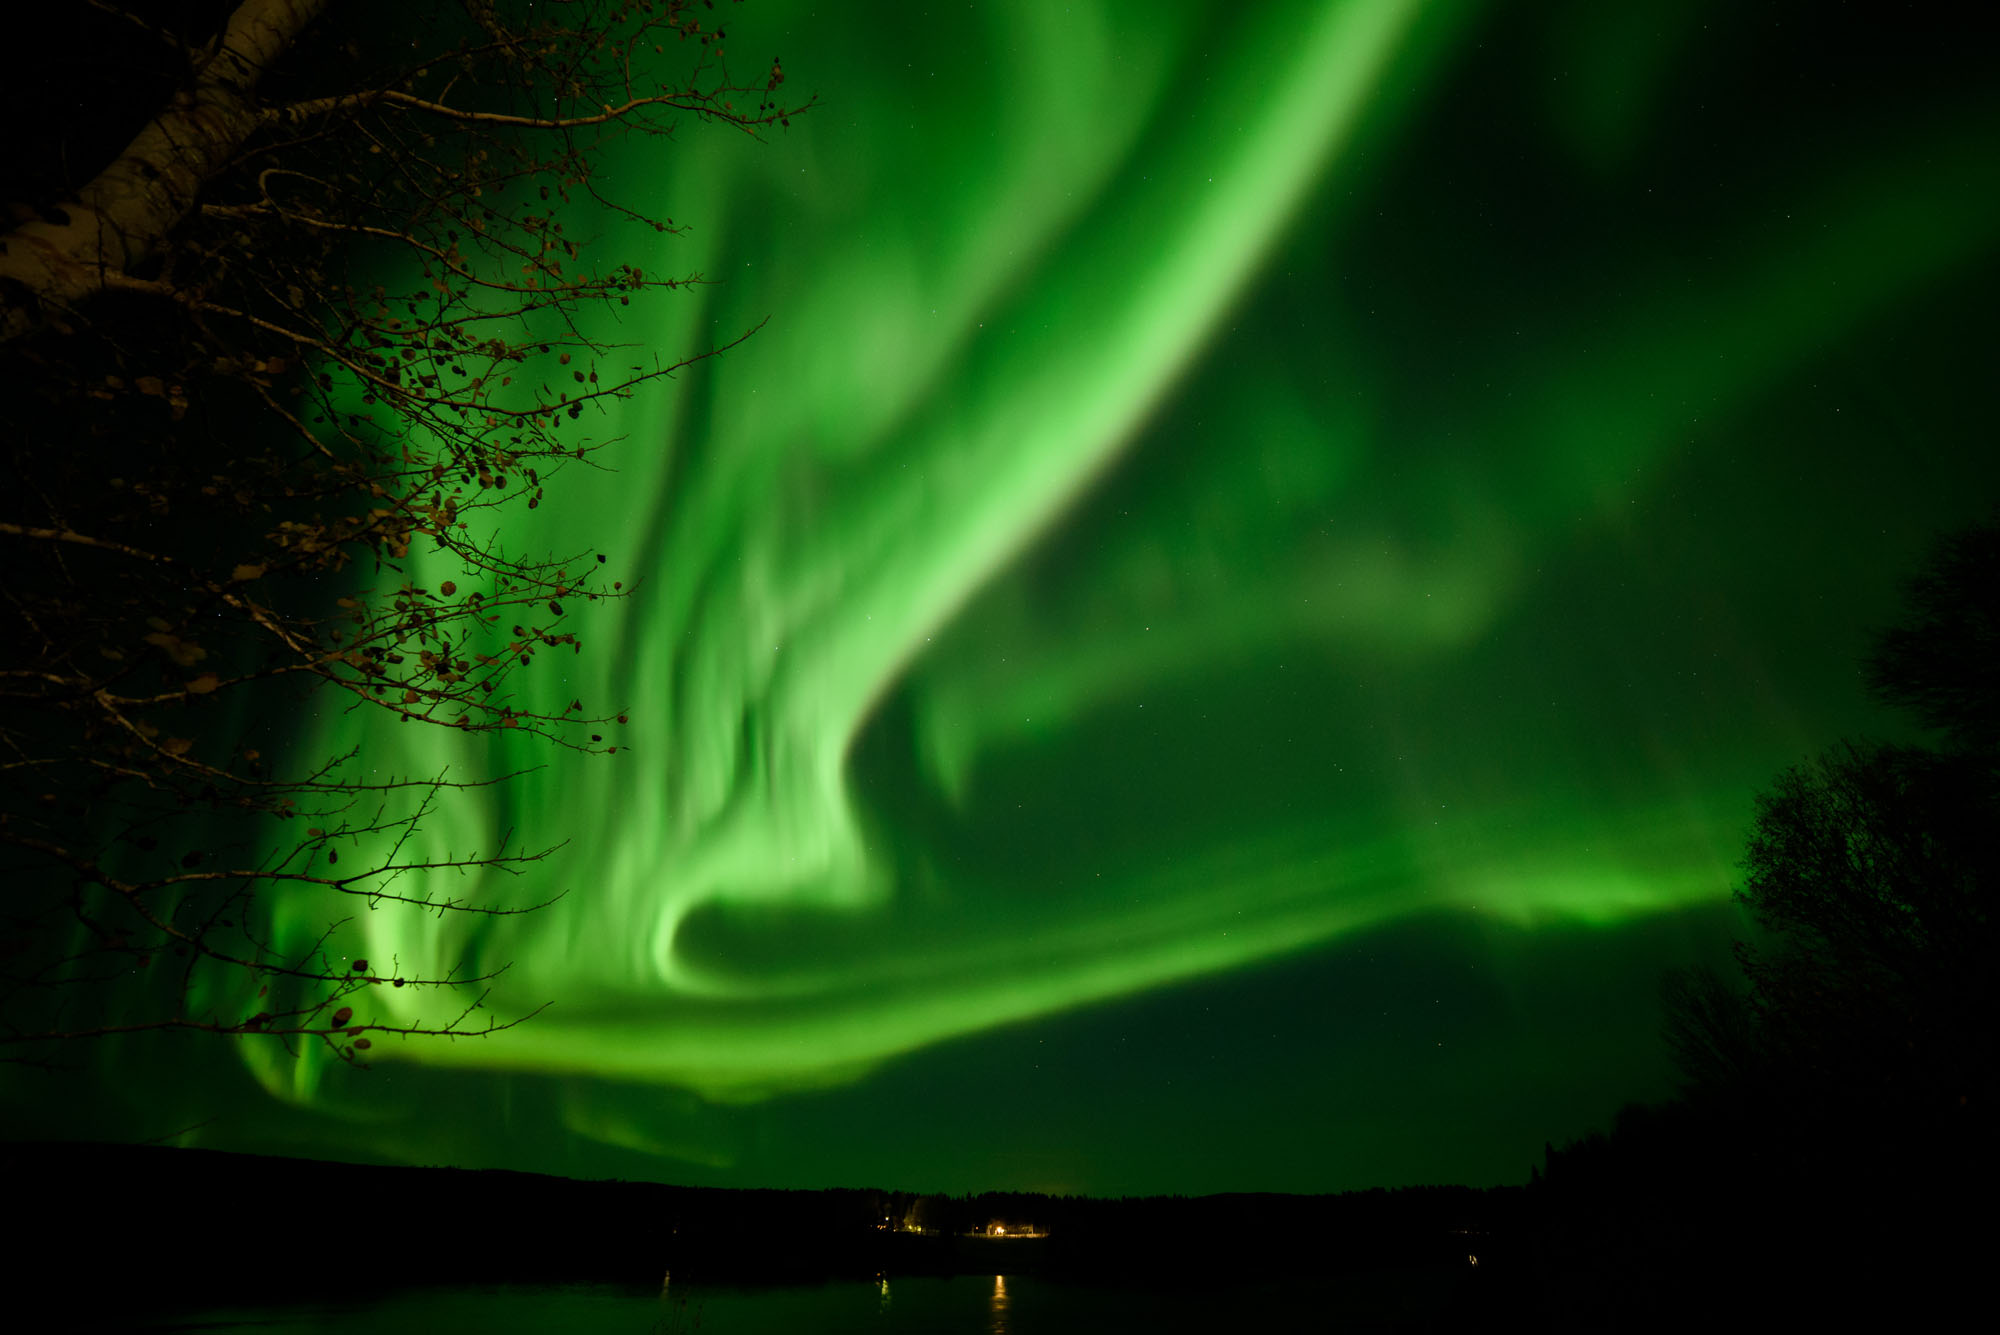 Northern lights dancing in the sky.